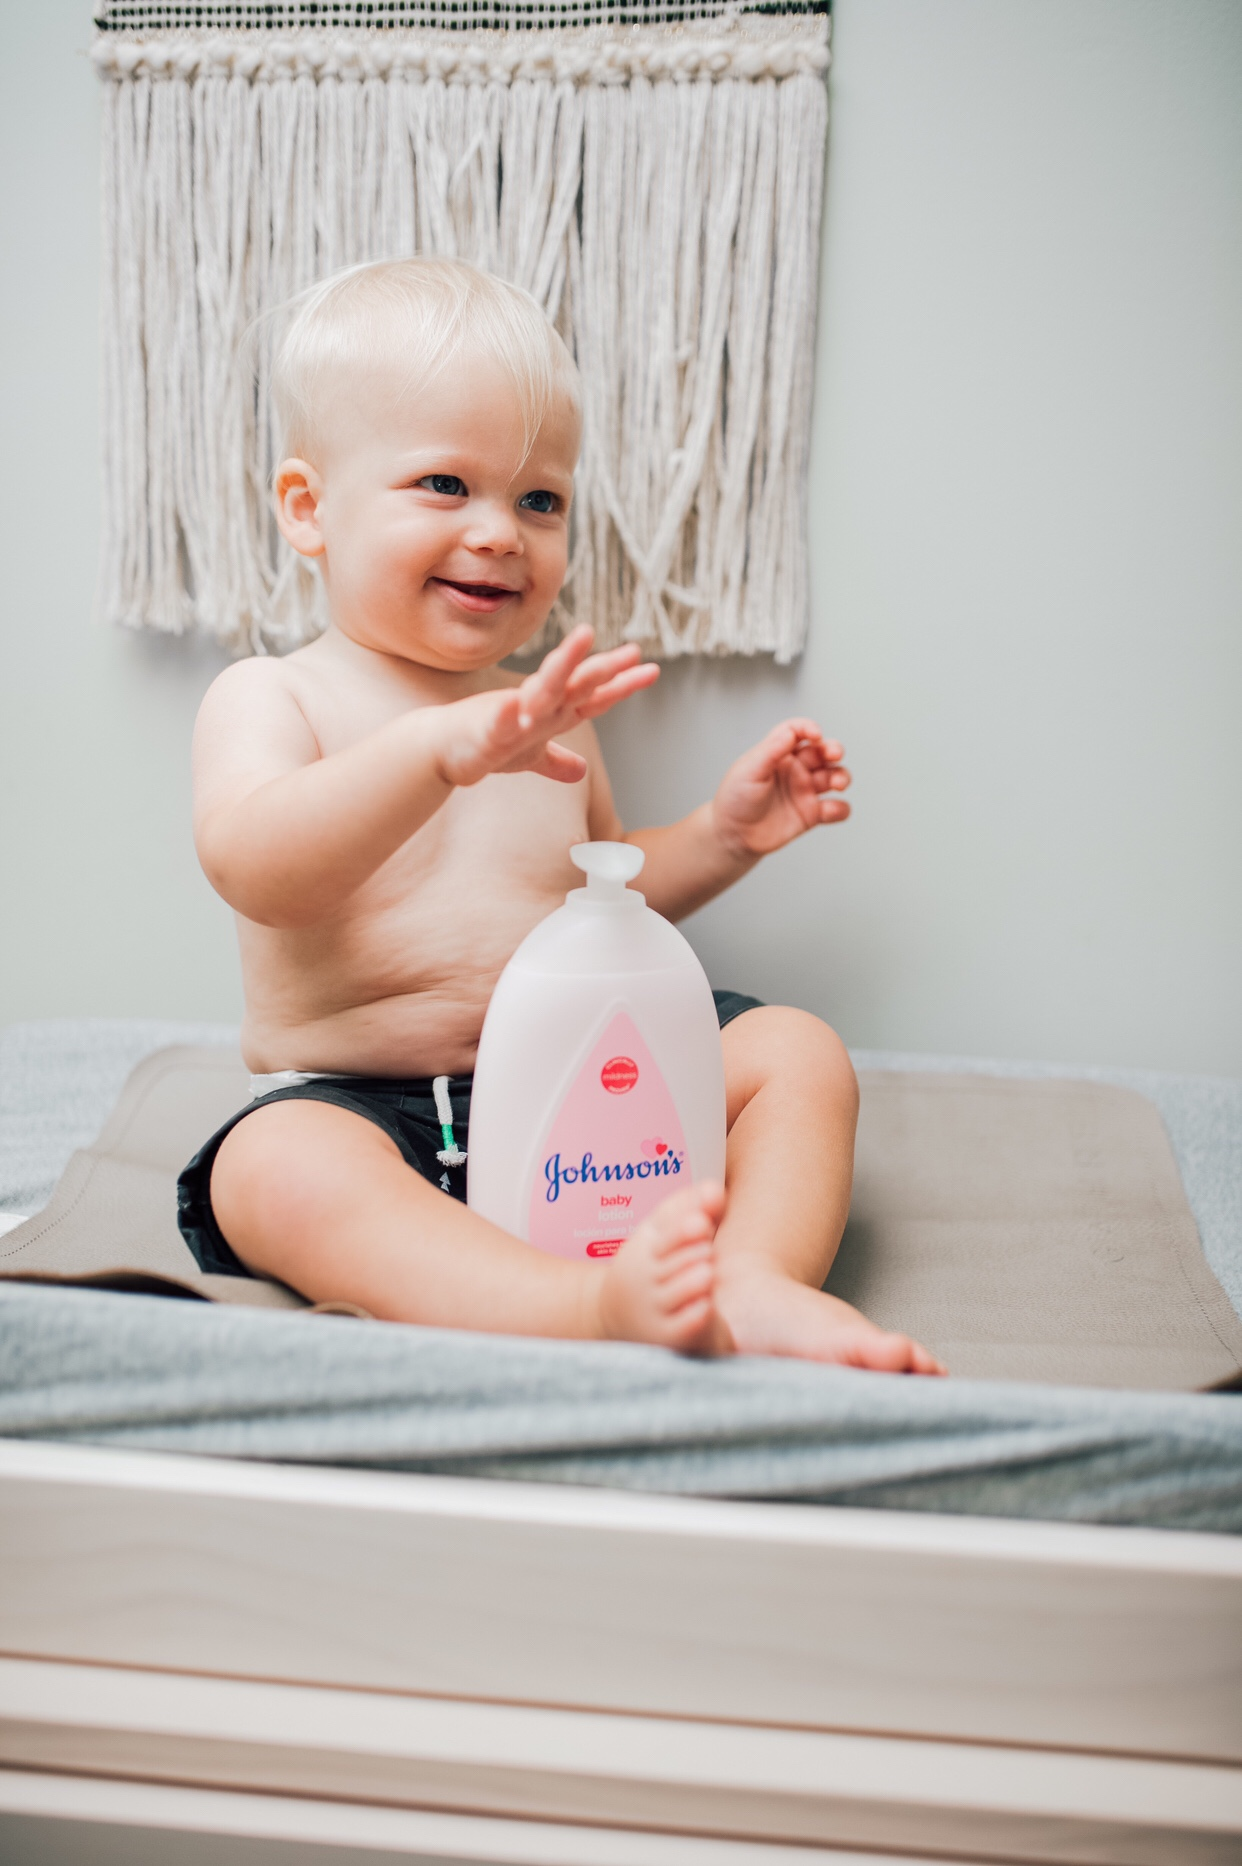 Johnson Baby Contest 2019 : johnson, contest, Moisturizing, JOHNSON'S®, Lotion, What's, Dinner